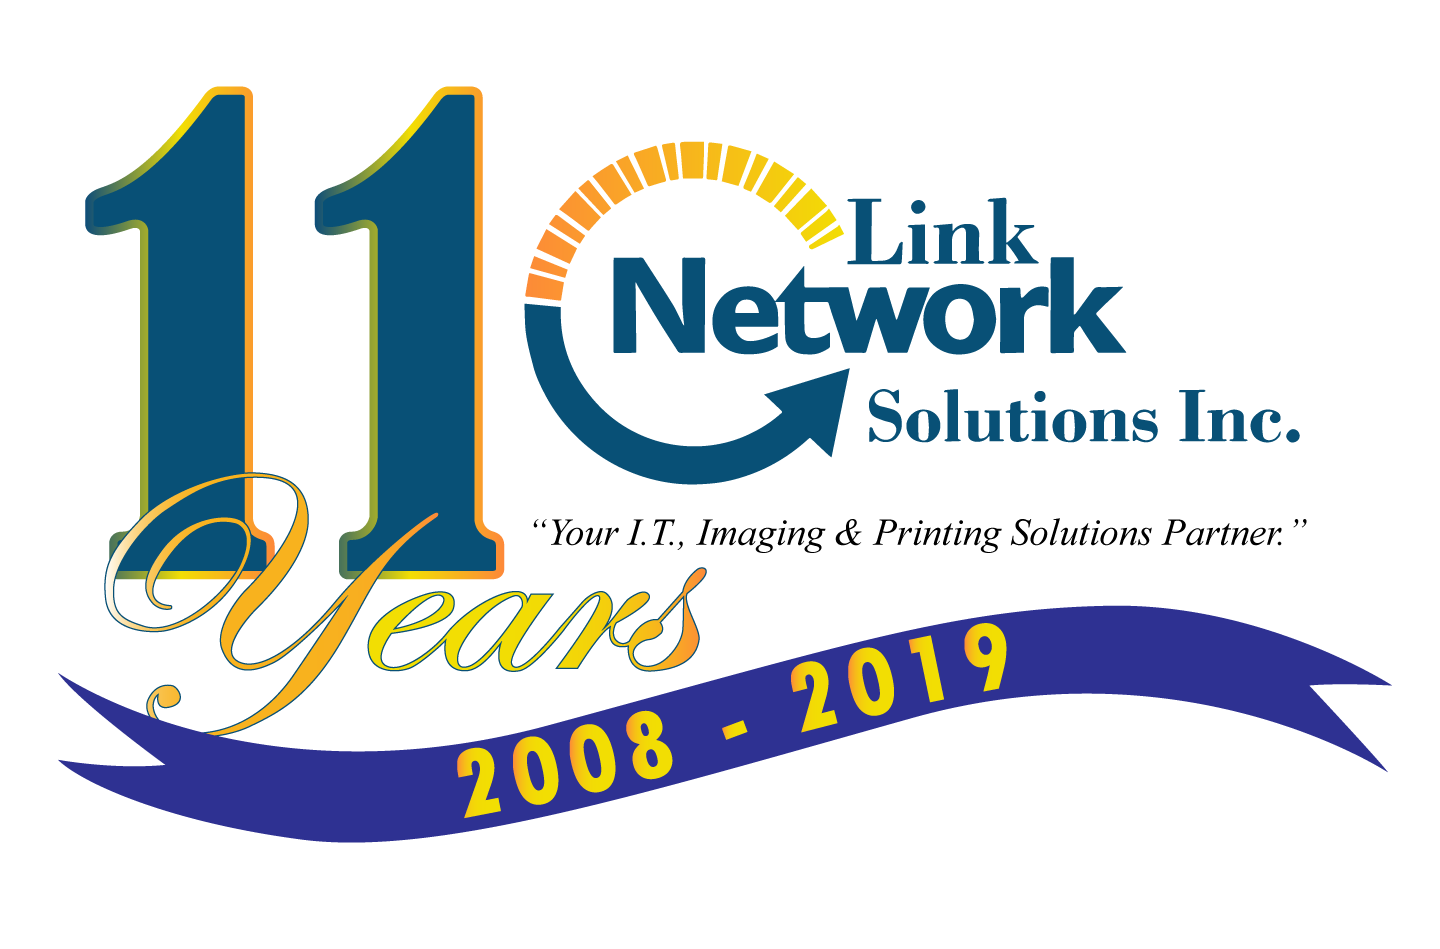 Link Network Solutions